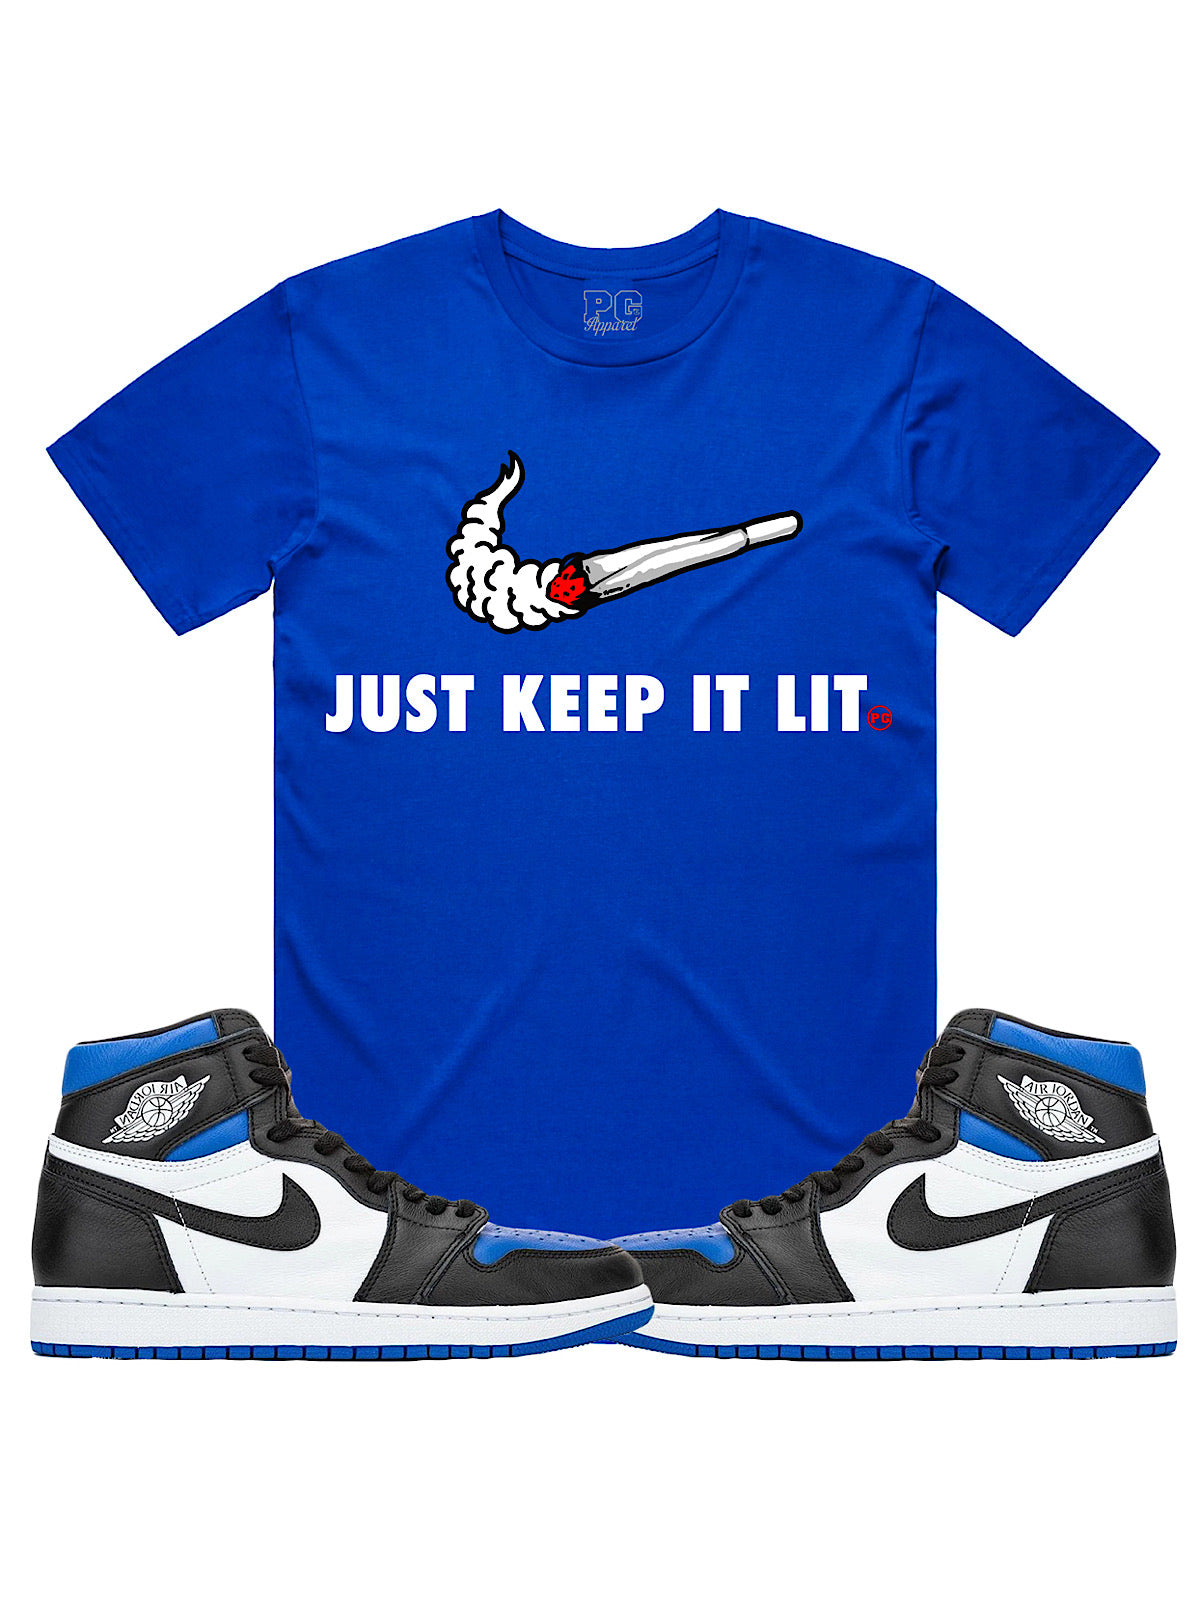 PG Apparel T-Shirt - Just Keep It Lit - Blue